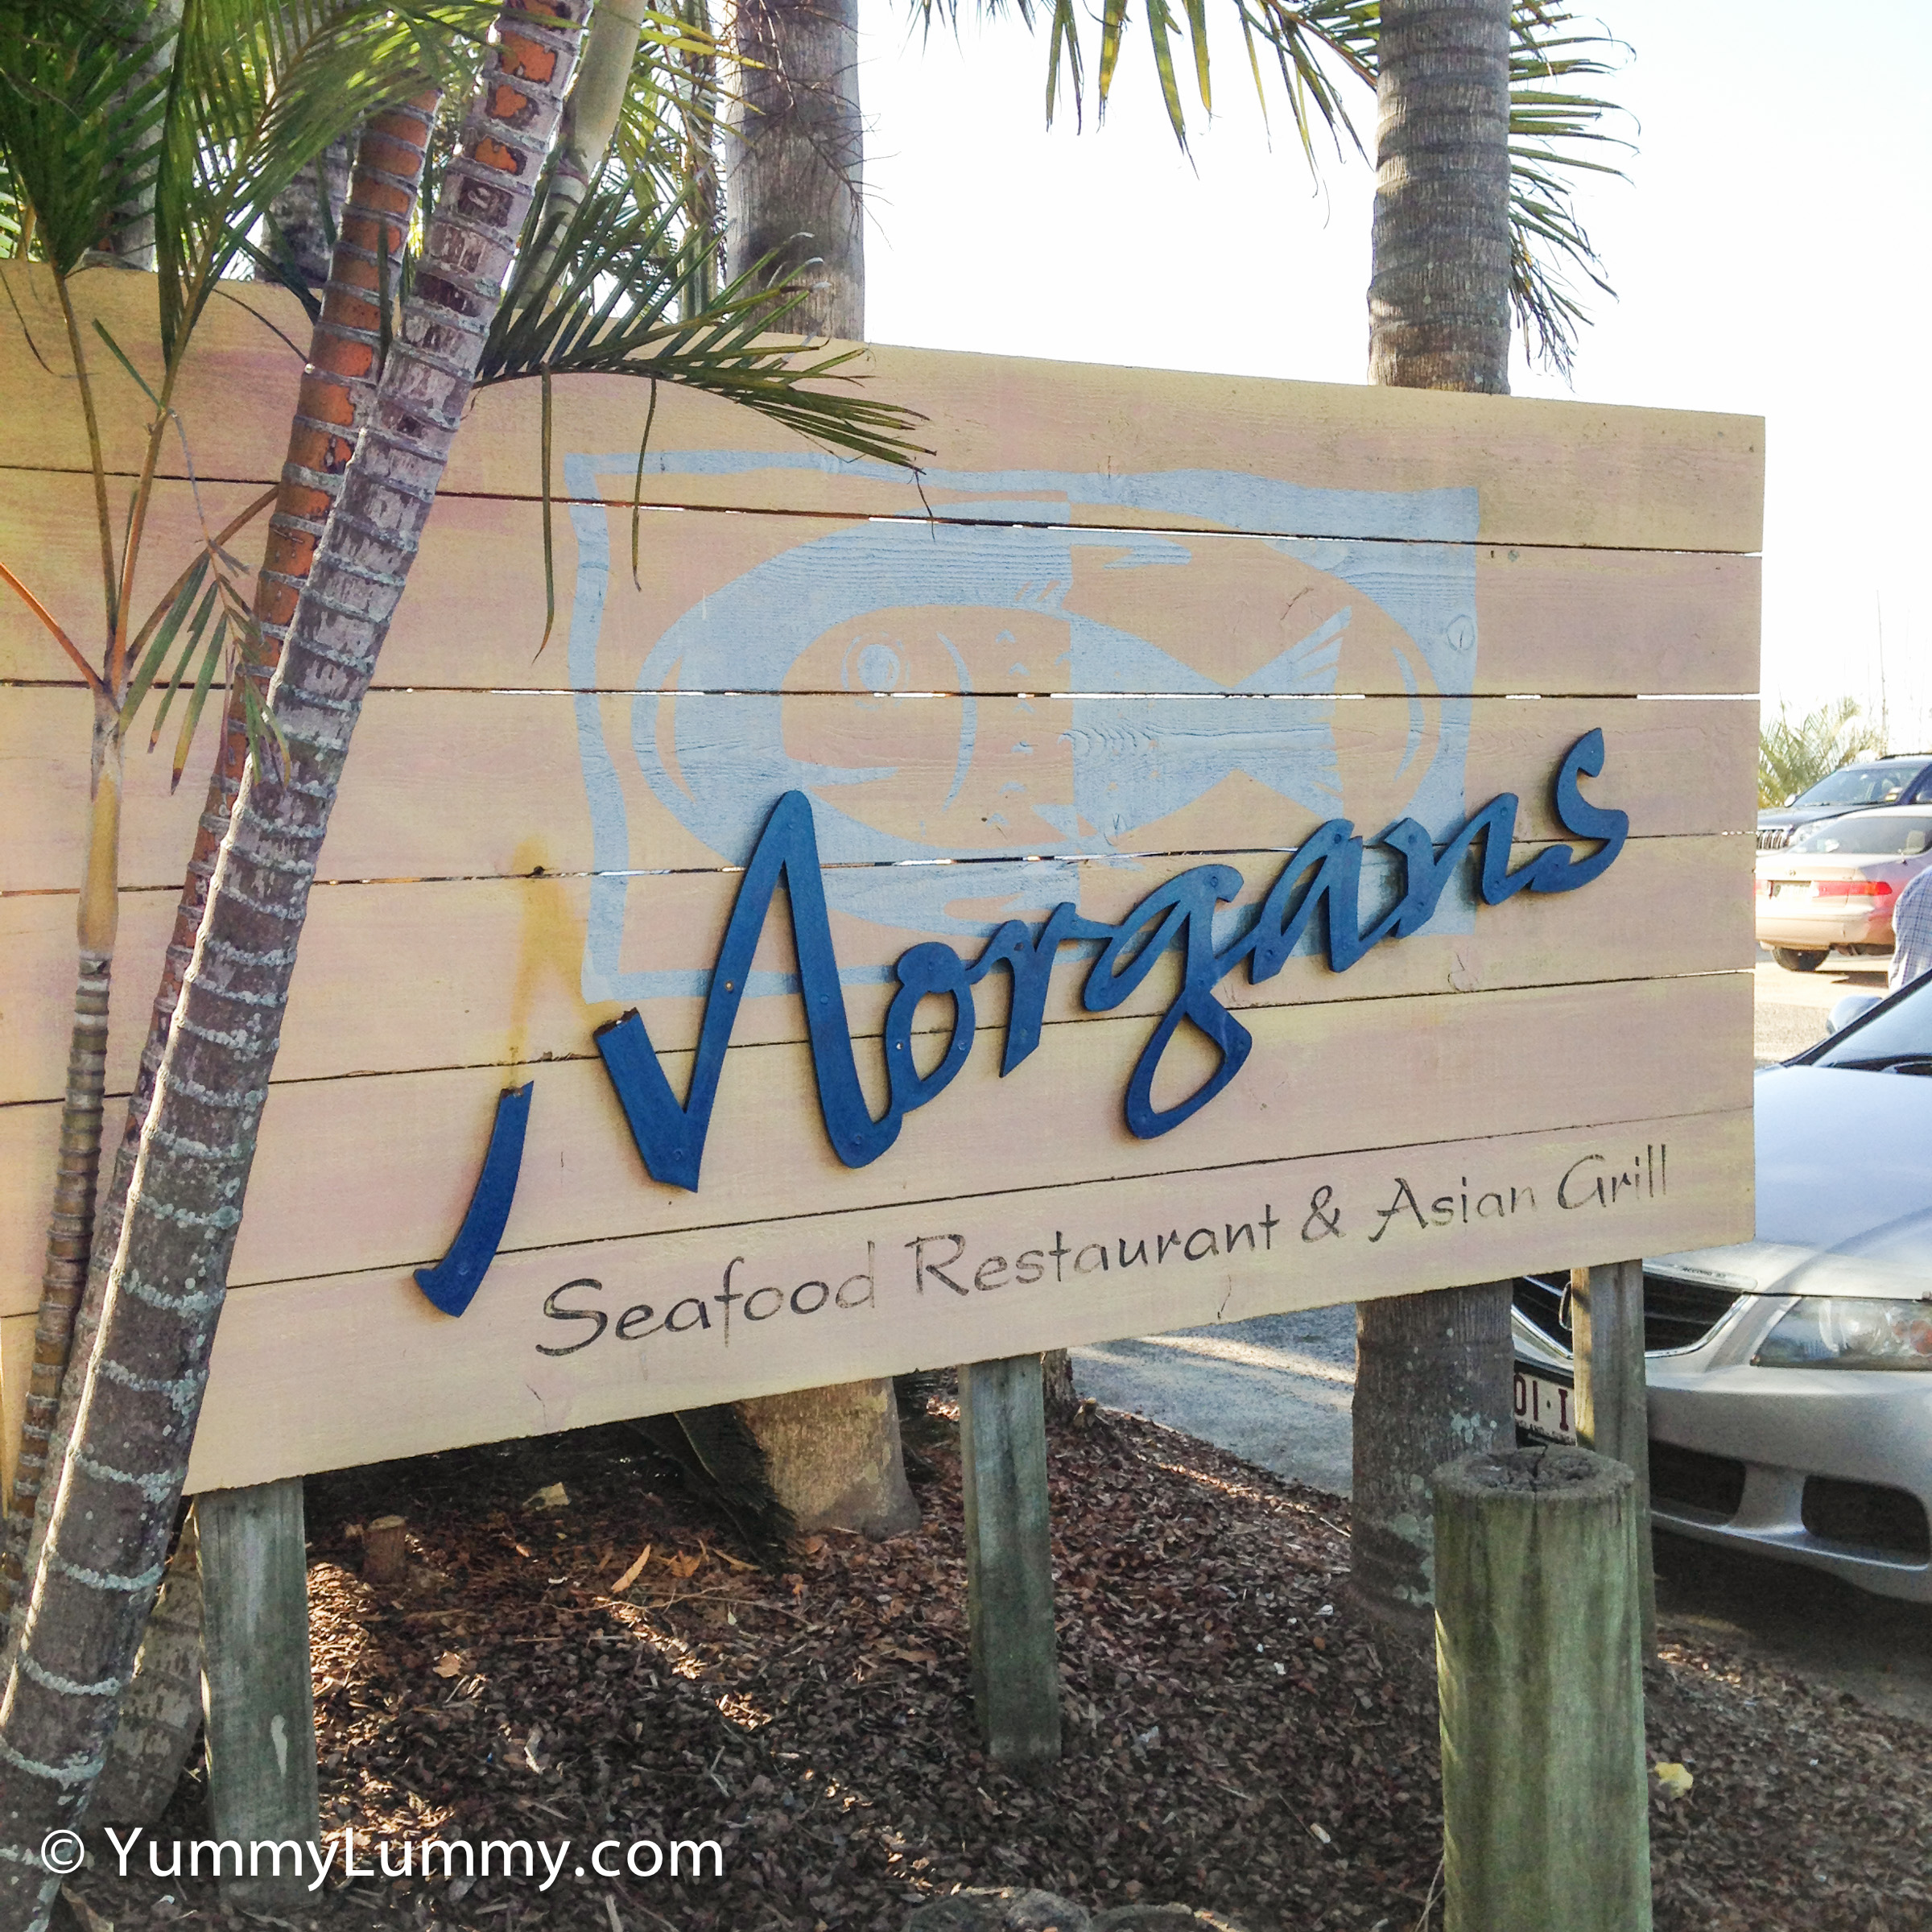 A photograph of the sign outside for Morgans Seafood Restaurant